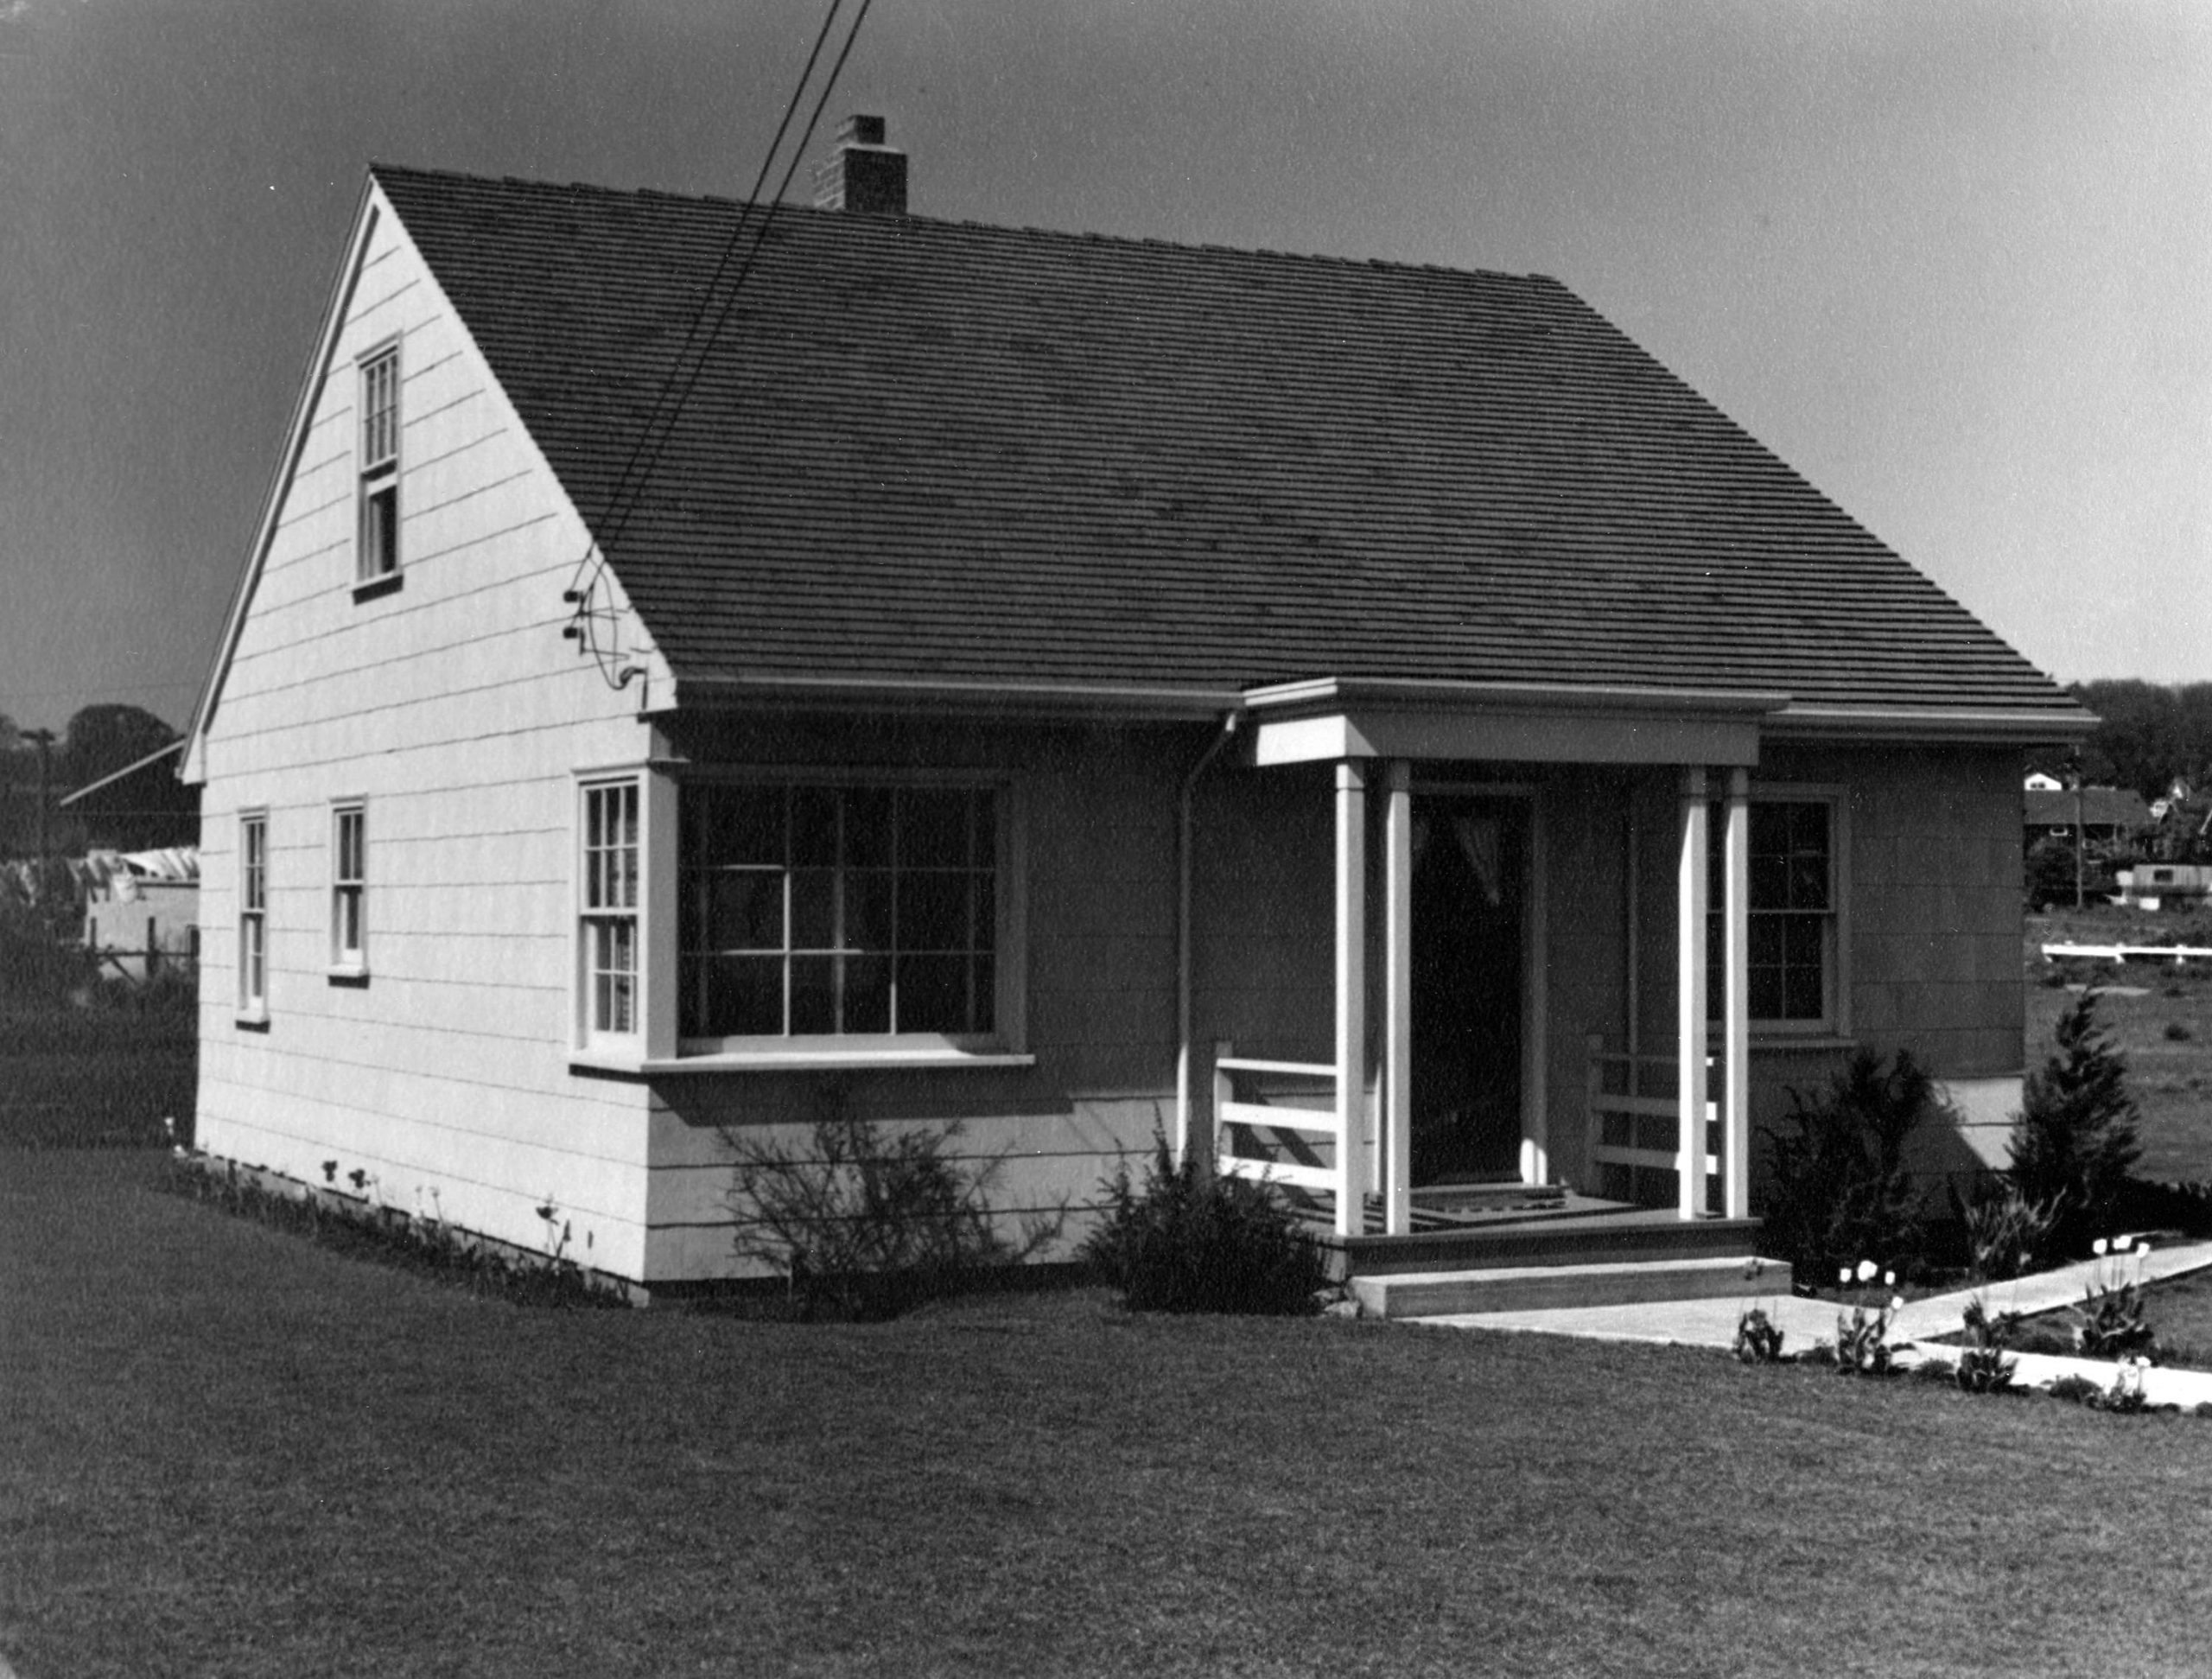 Wartime Housing in Canada and Ontario, Owen Sound Real Estate, Grey Bruce Real Estate